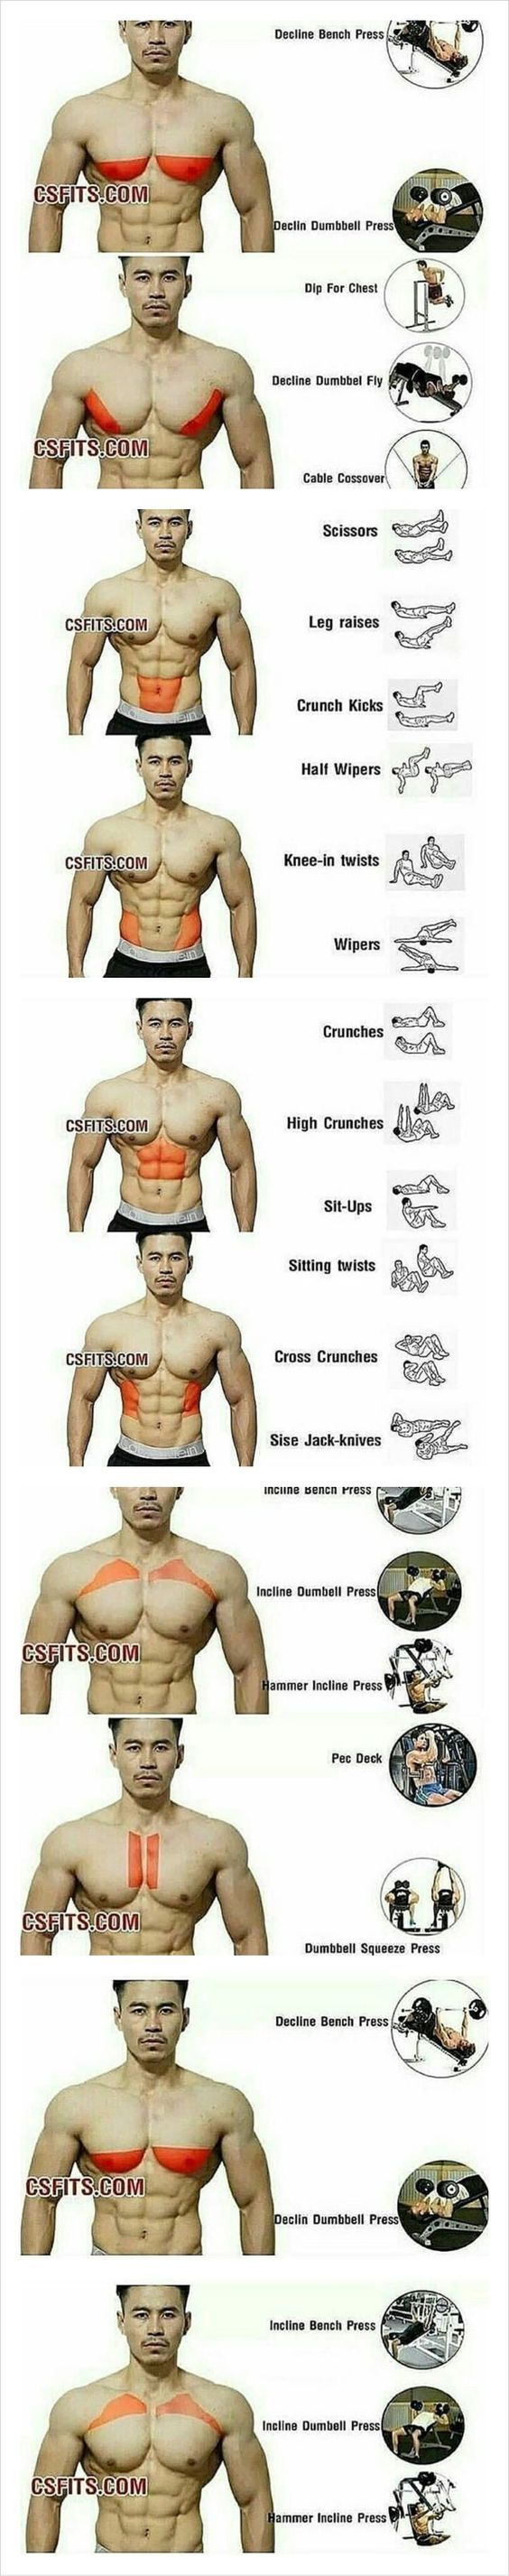 Exercises for every part of your chest. Try today to hit